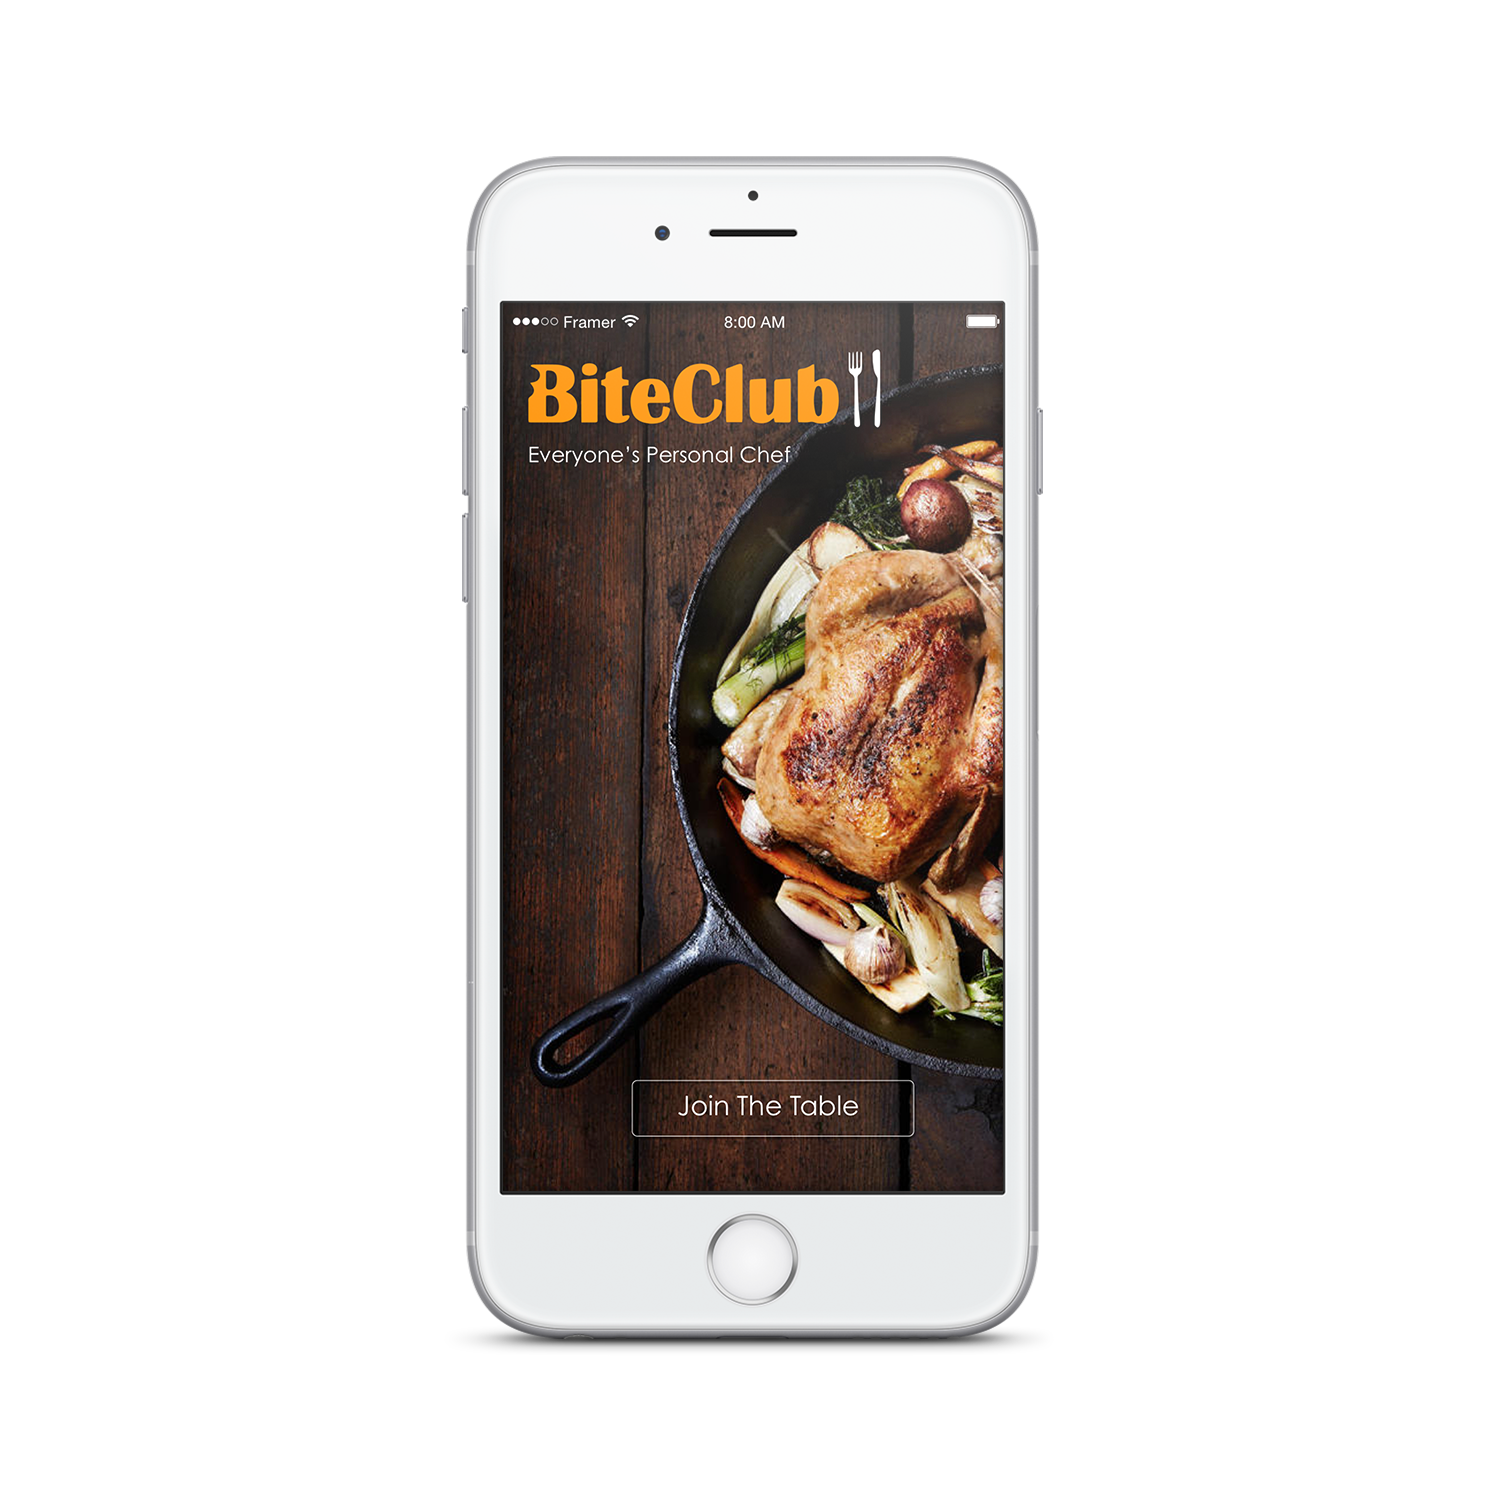 Biteclub Iphone Screen 1.png